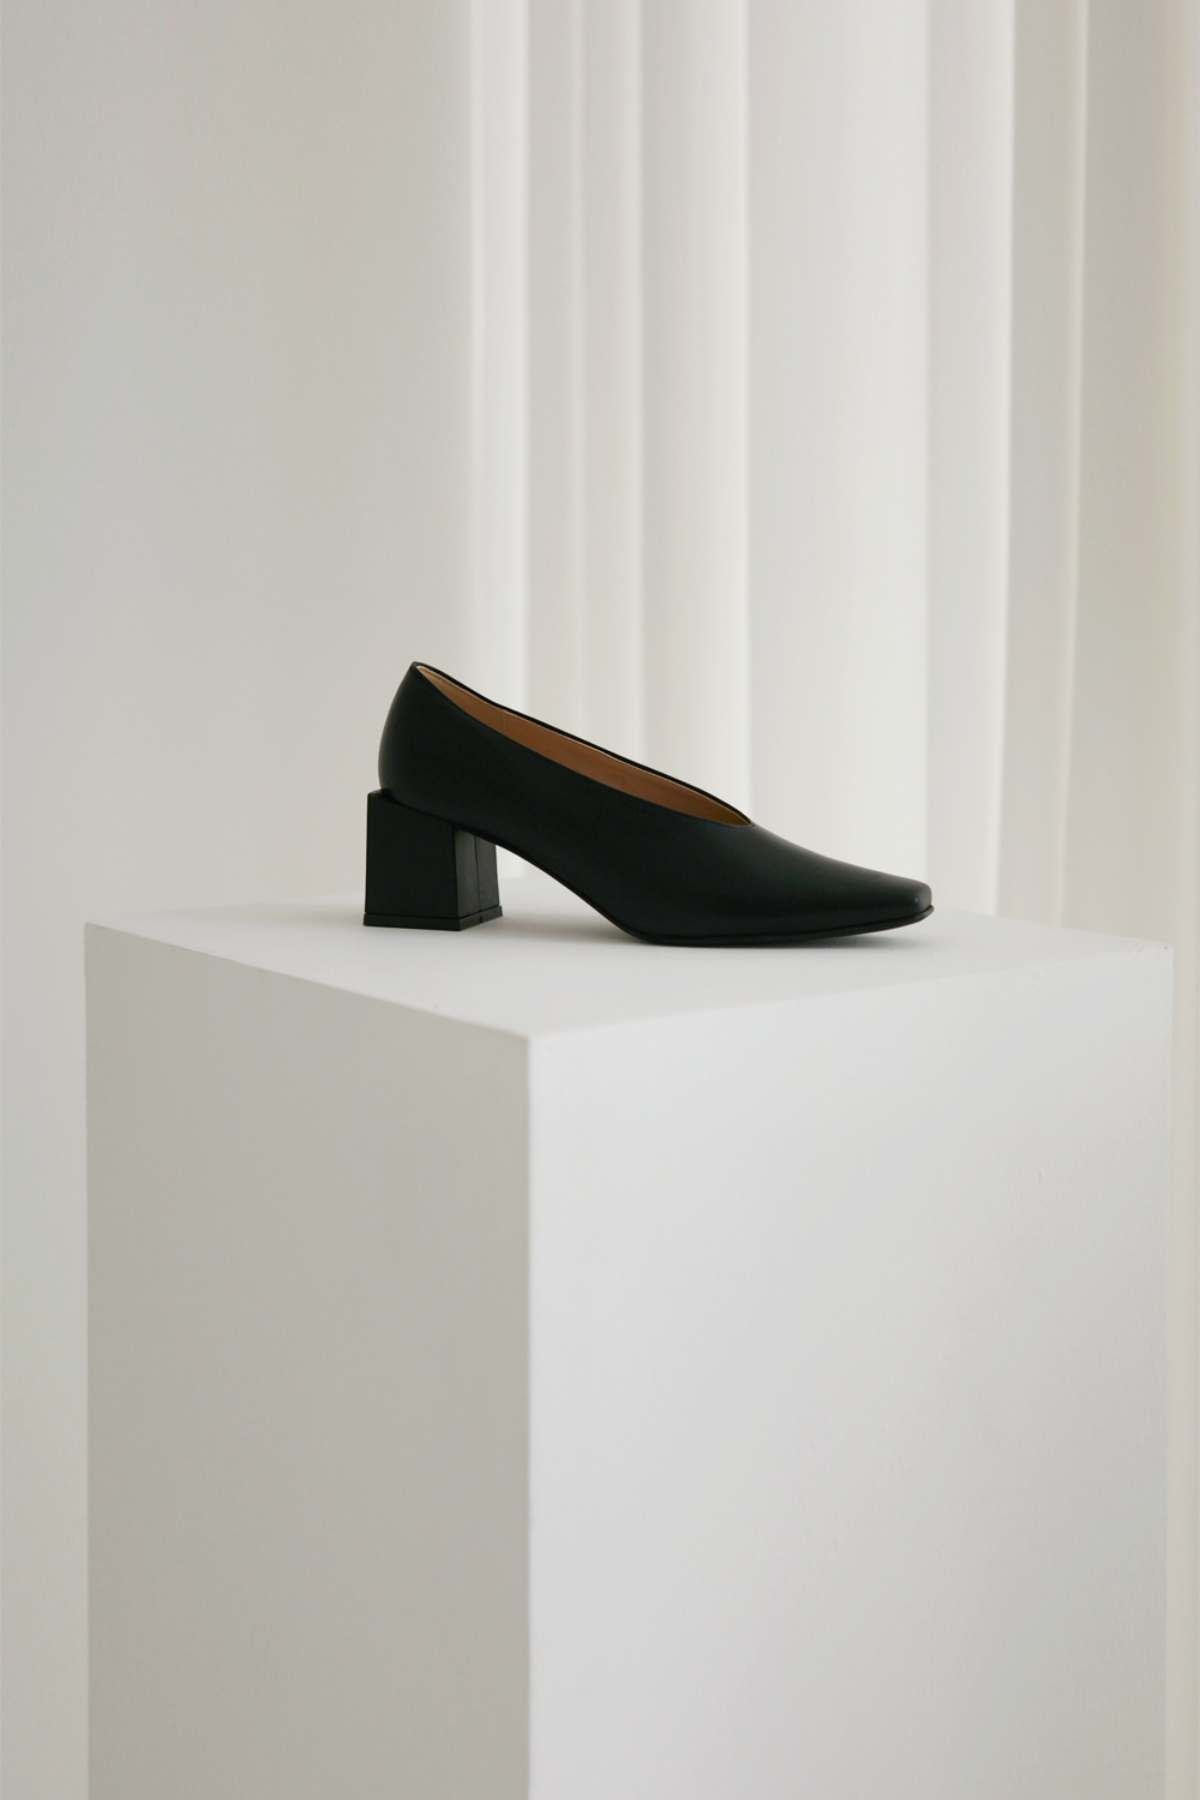 anthese venica square middle heel, black